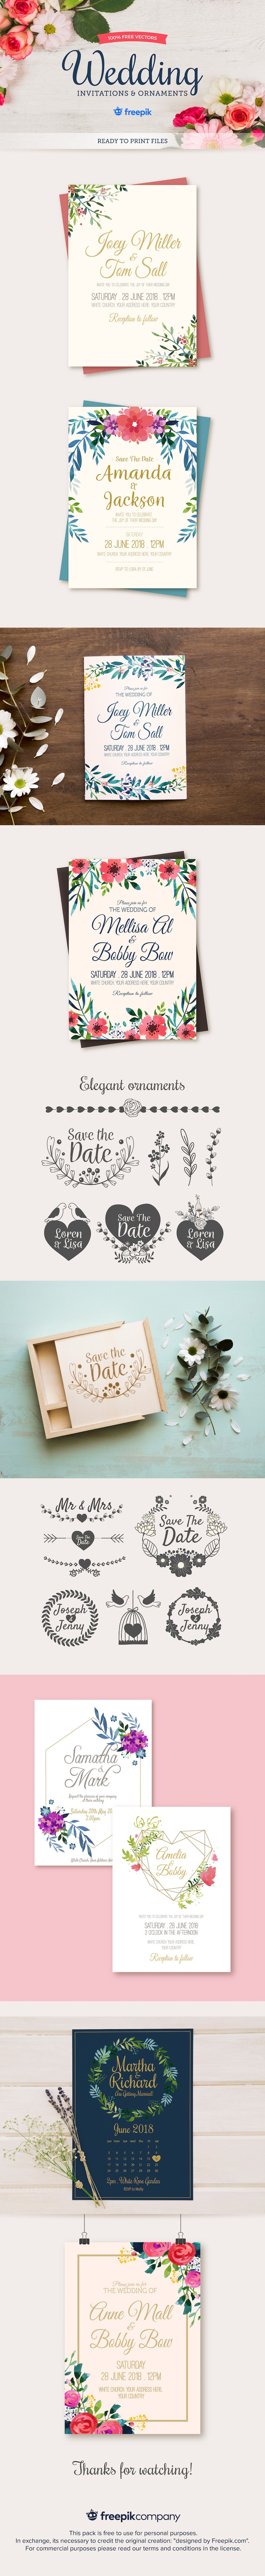 free wedding invitations ornaments vectors